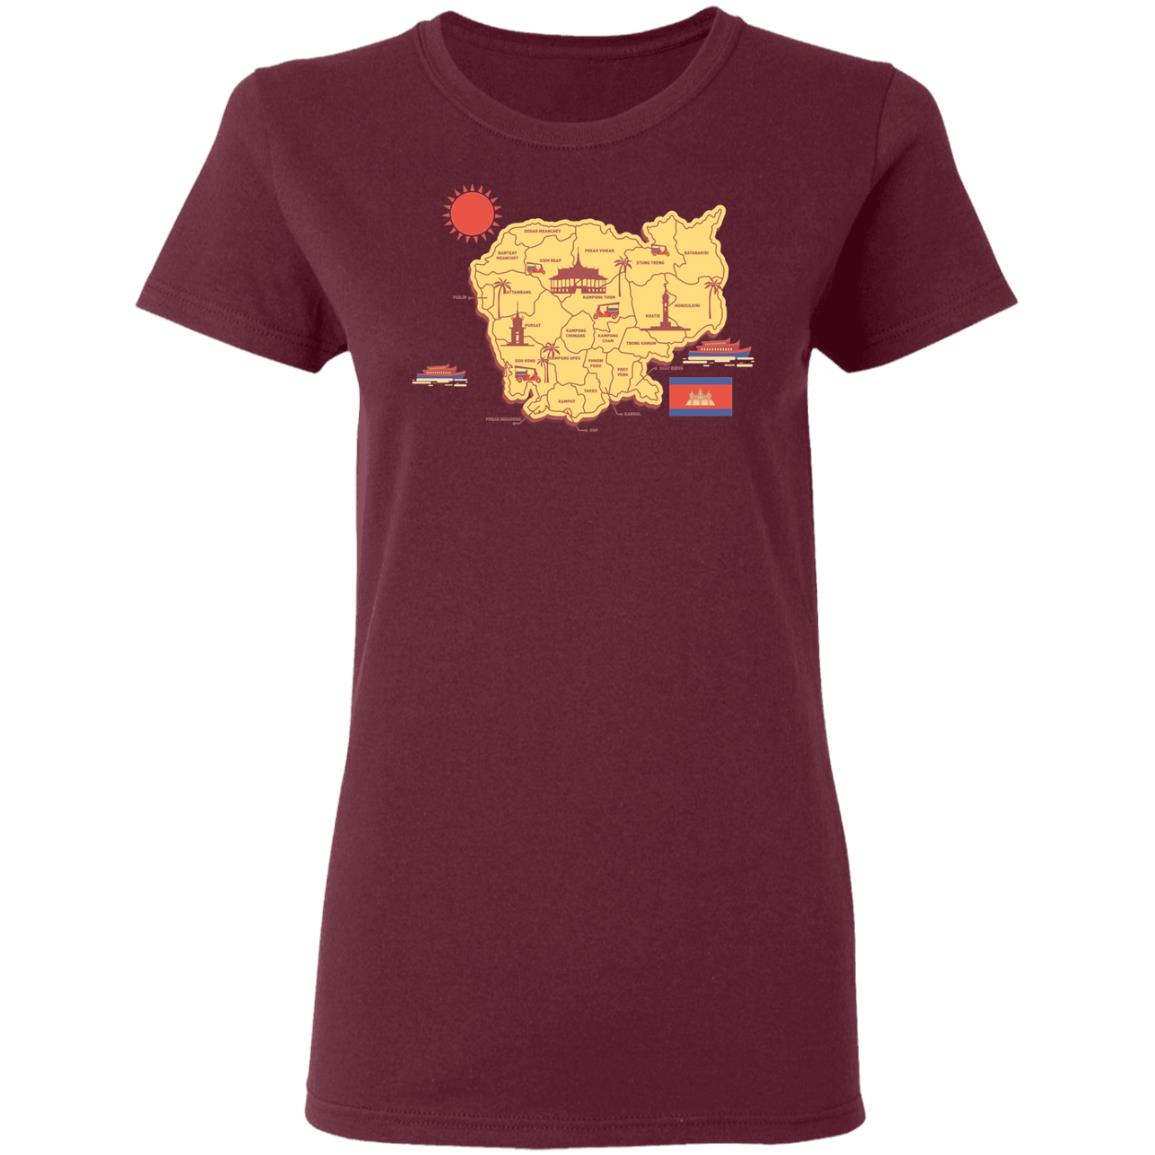 Cambodia travel map G500L Ladies' 5.3 oz. T-Shirt